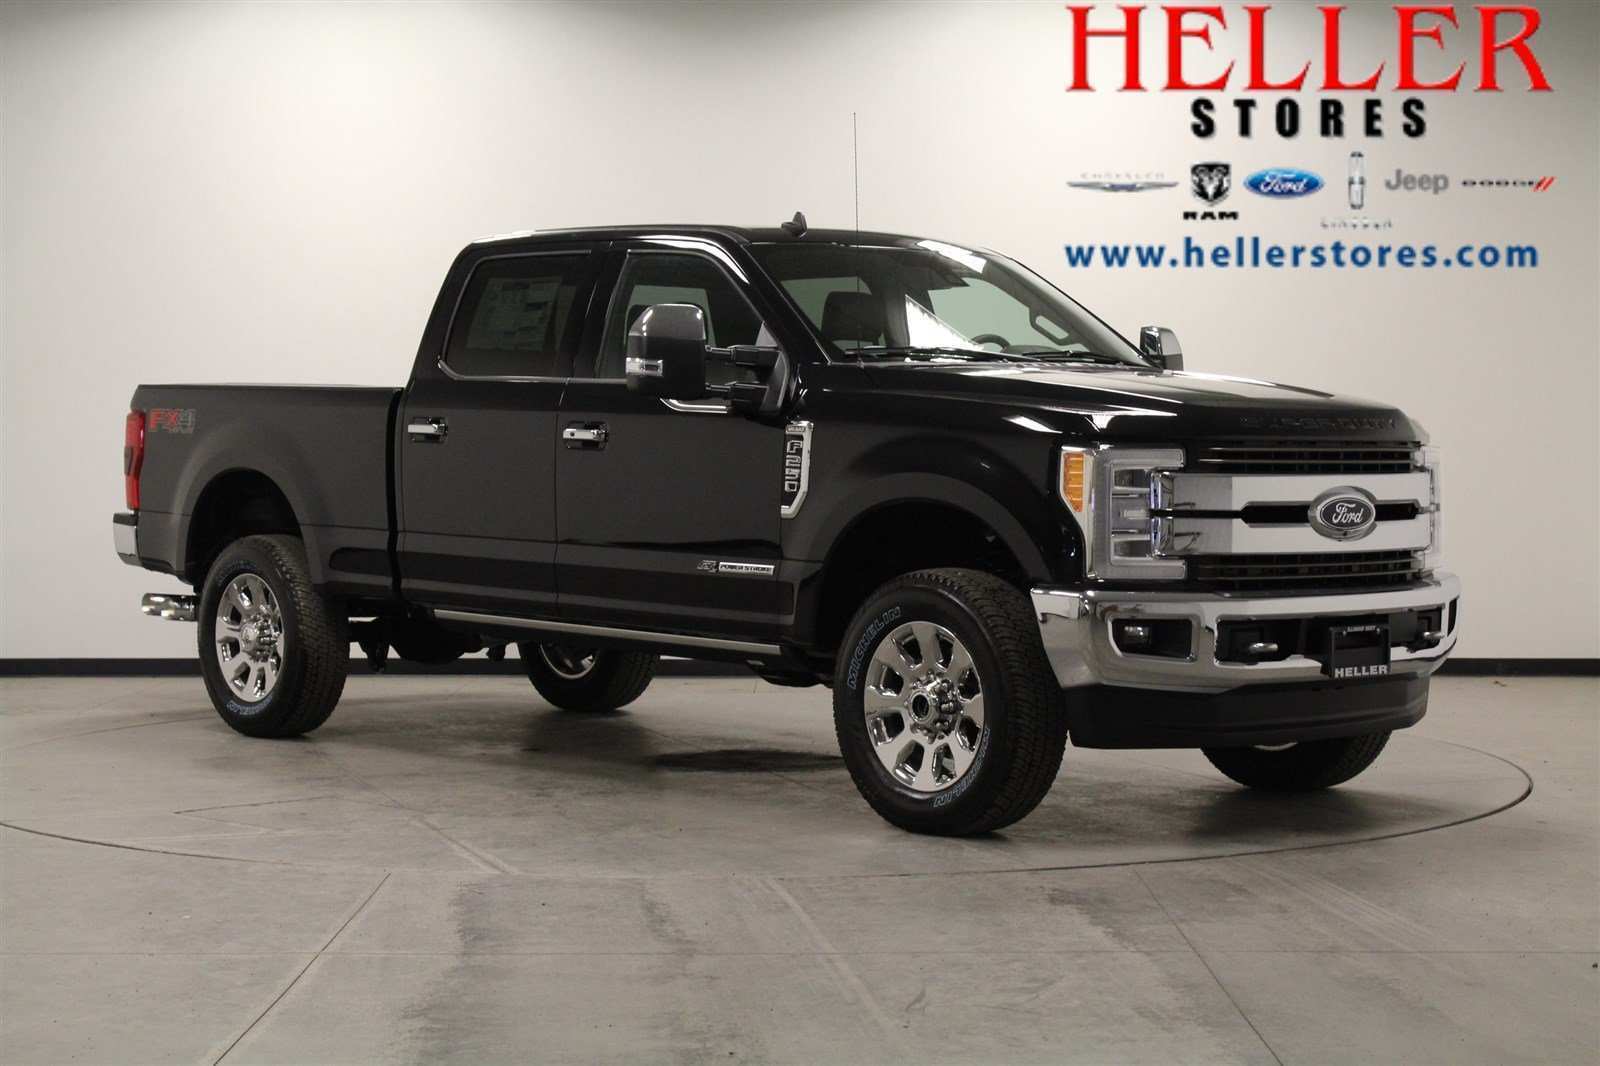 25 All New 2019 Ford F250 Exterior And Interior